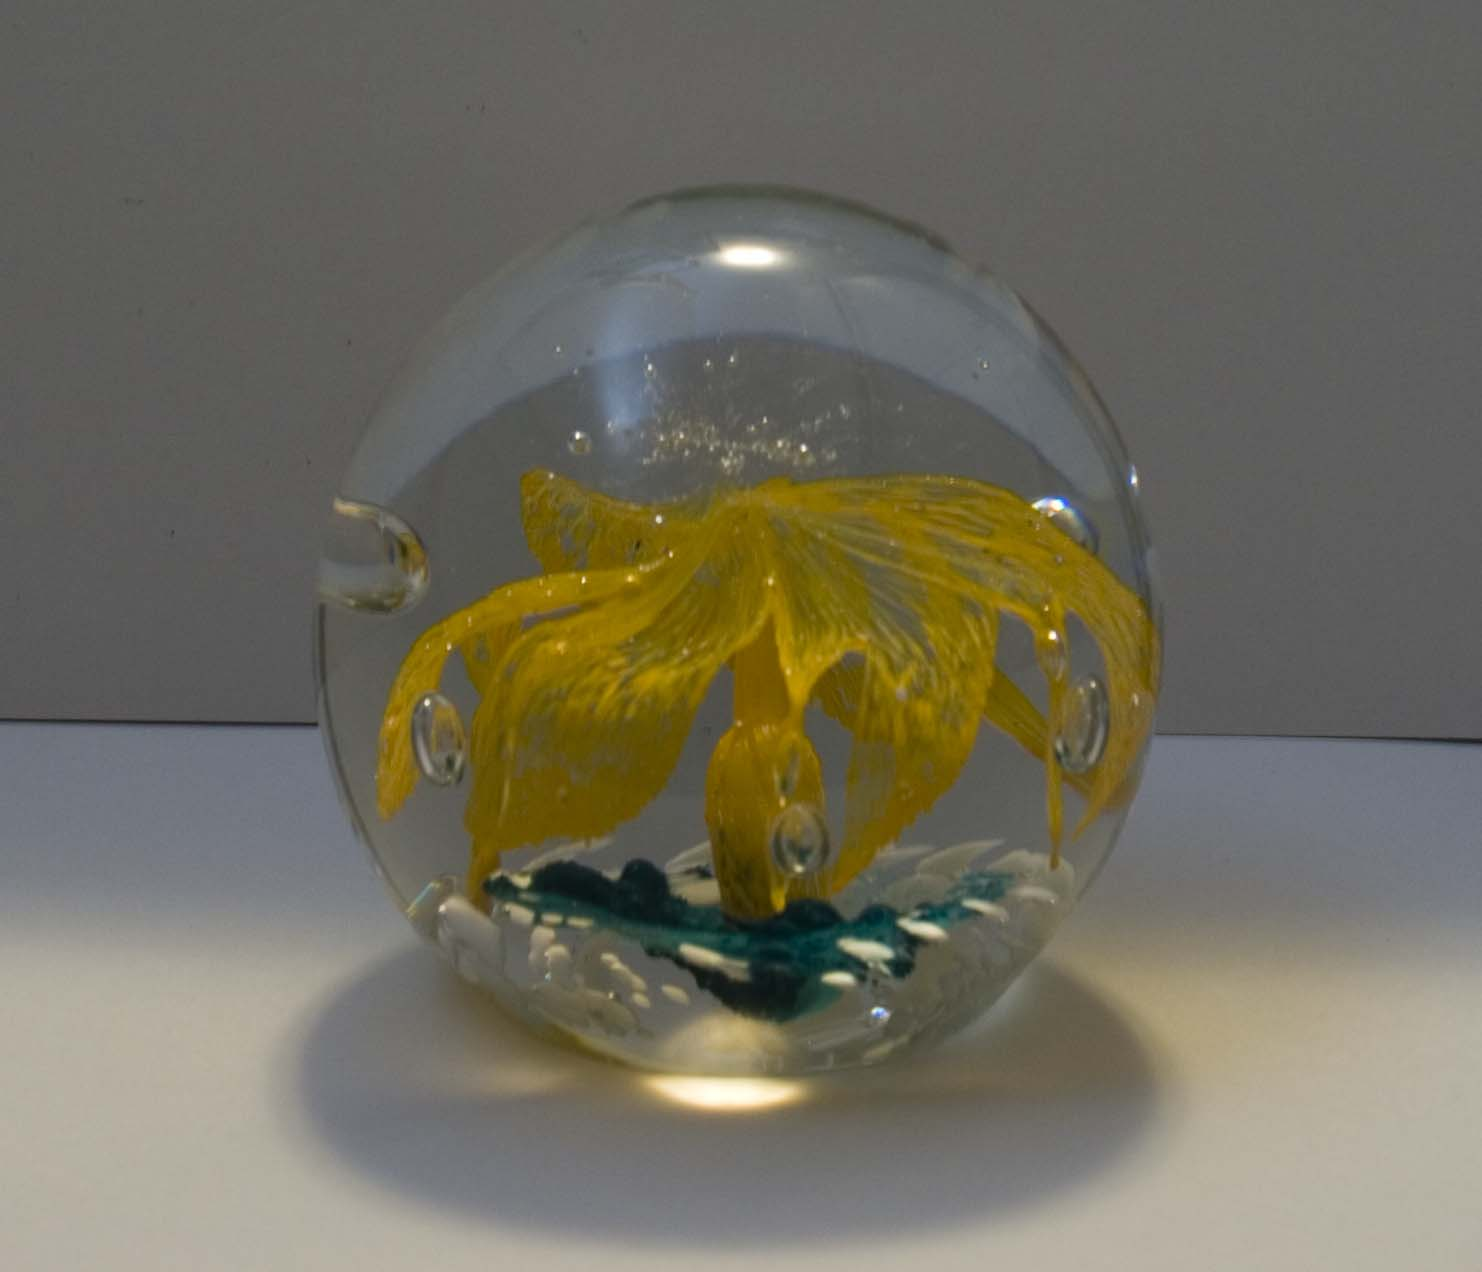 https://upload.wikimedia.org/wikipedia/commons/9/96/Glass_paperweight.jpg